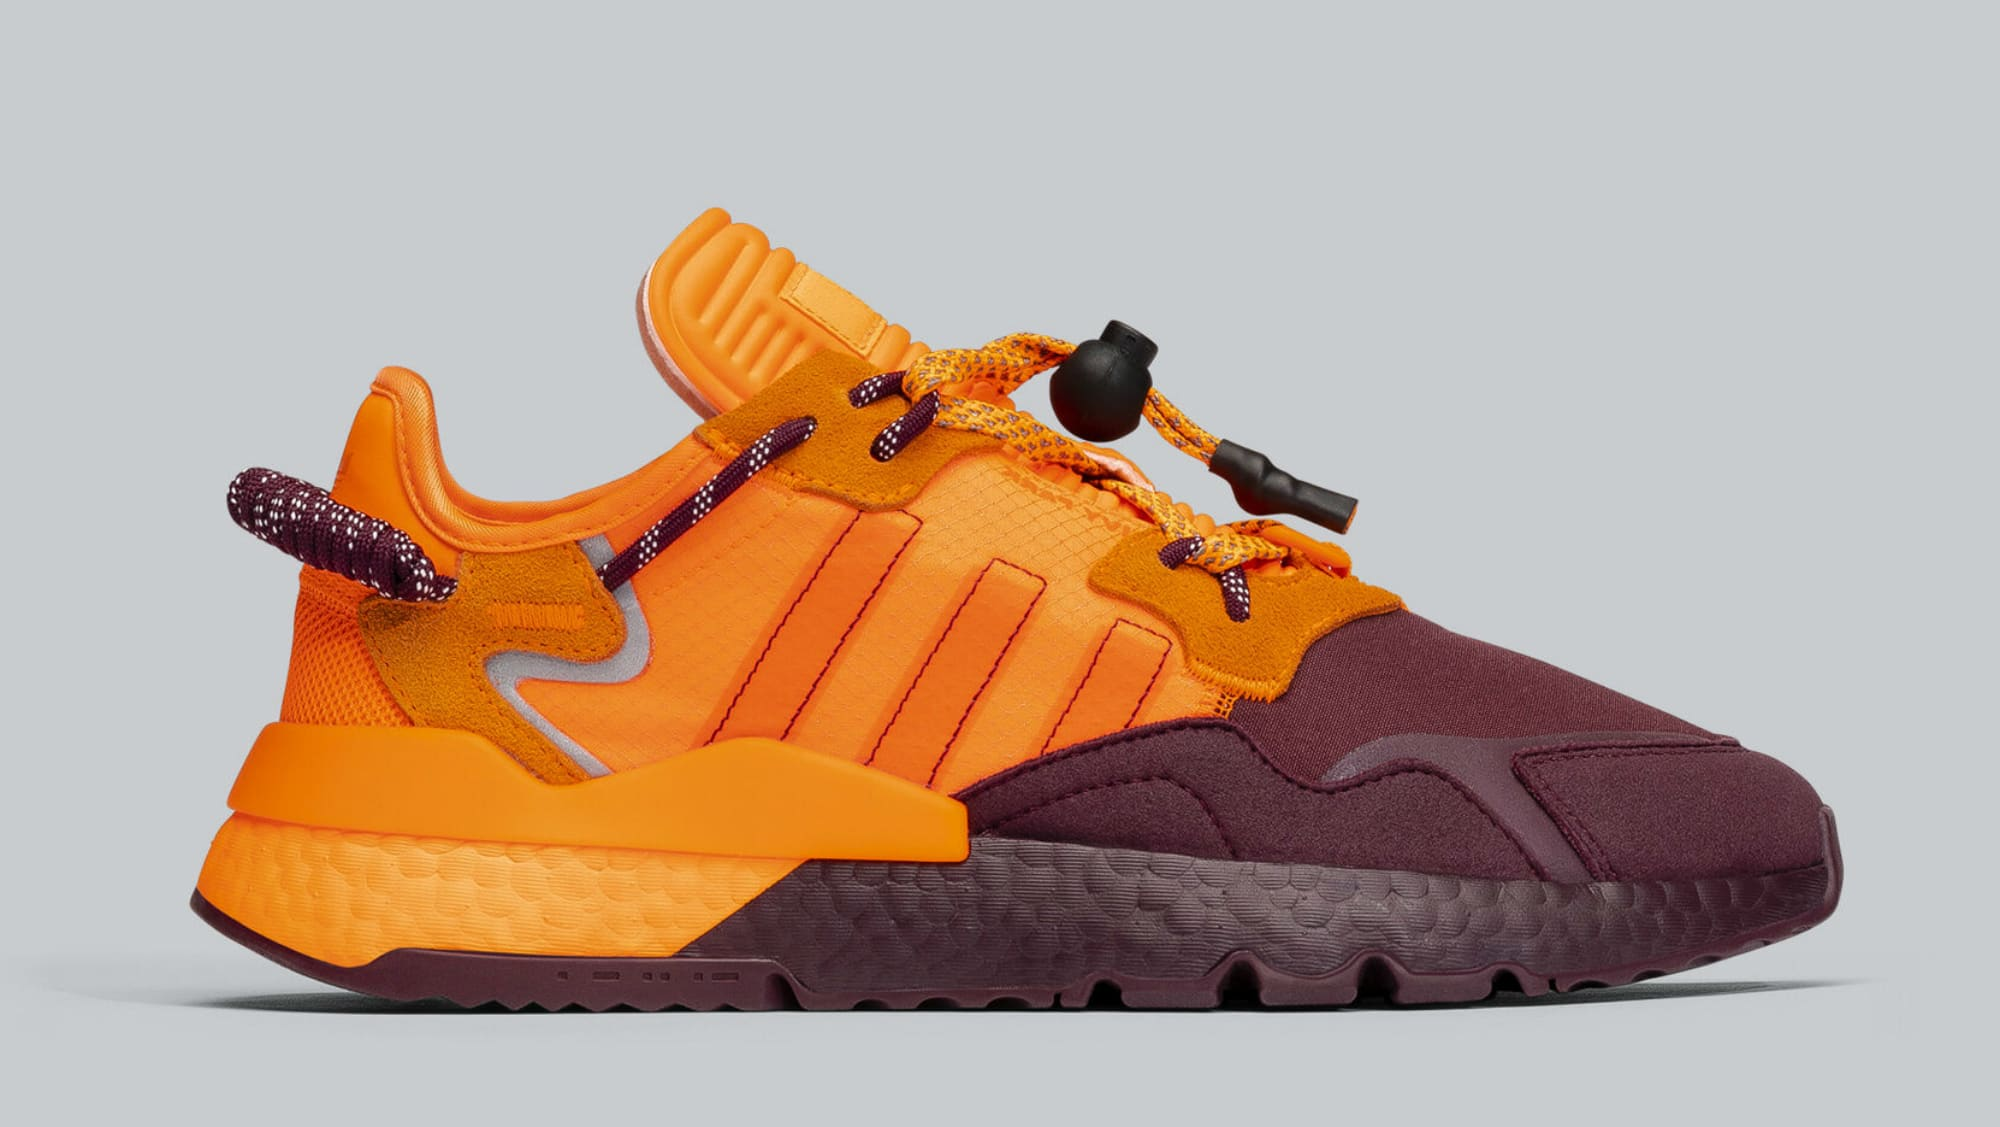 ivy-park-adidas-nite-jogger-fx3158-release-date